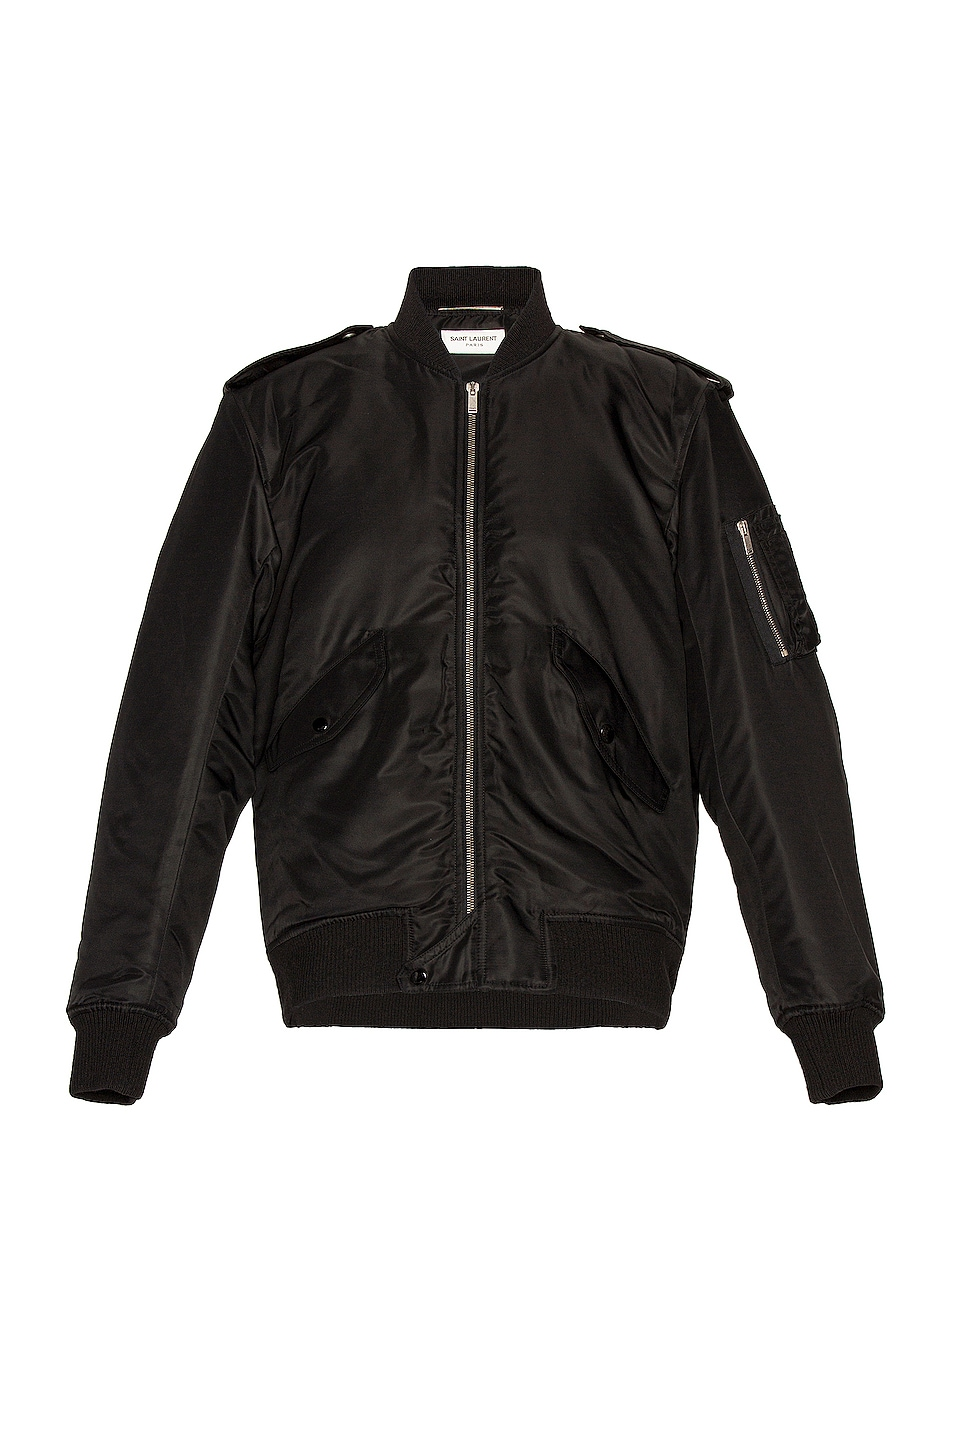 Image 1 of Saint Laurent Bomber Jacket in Black